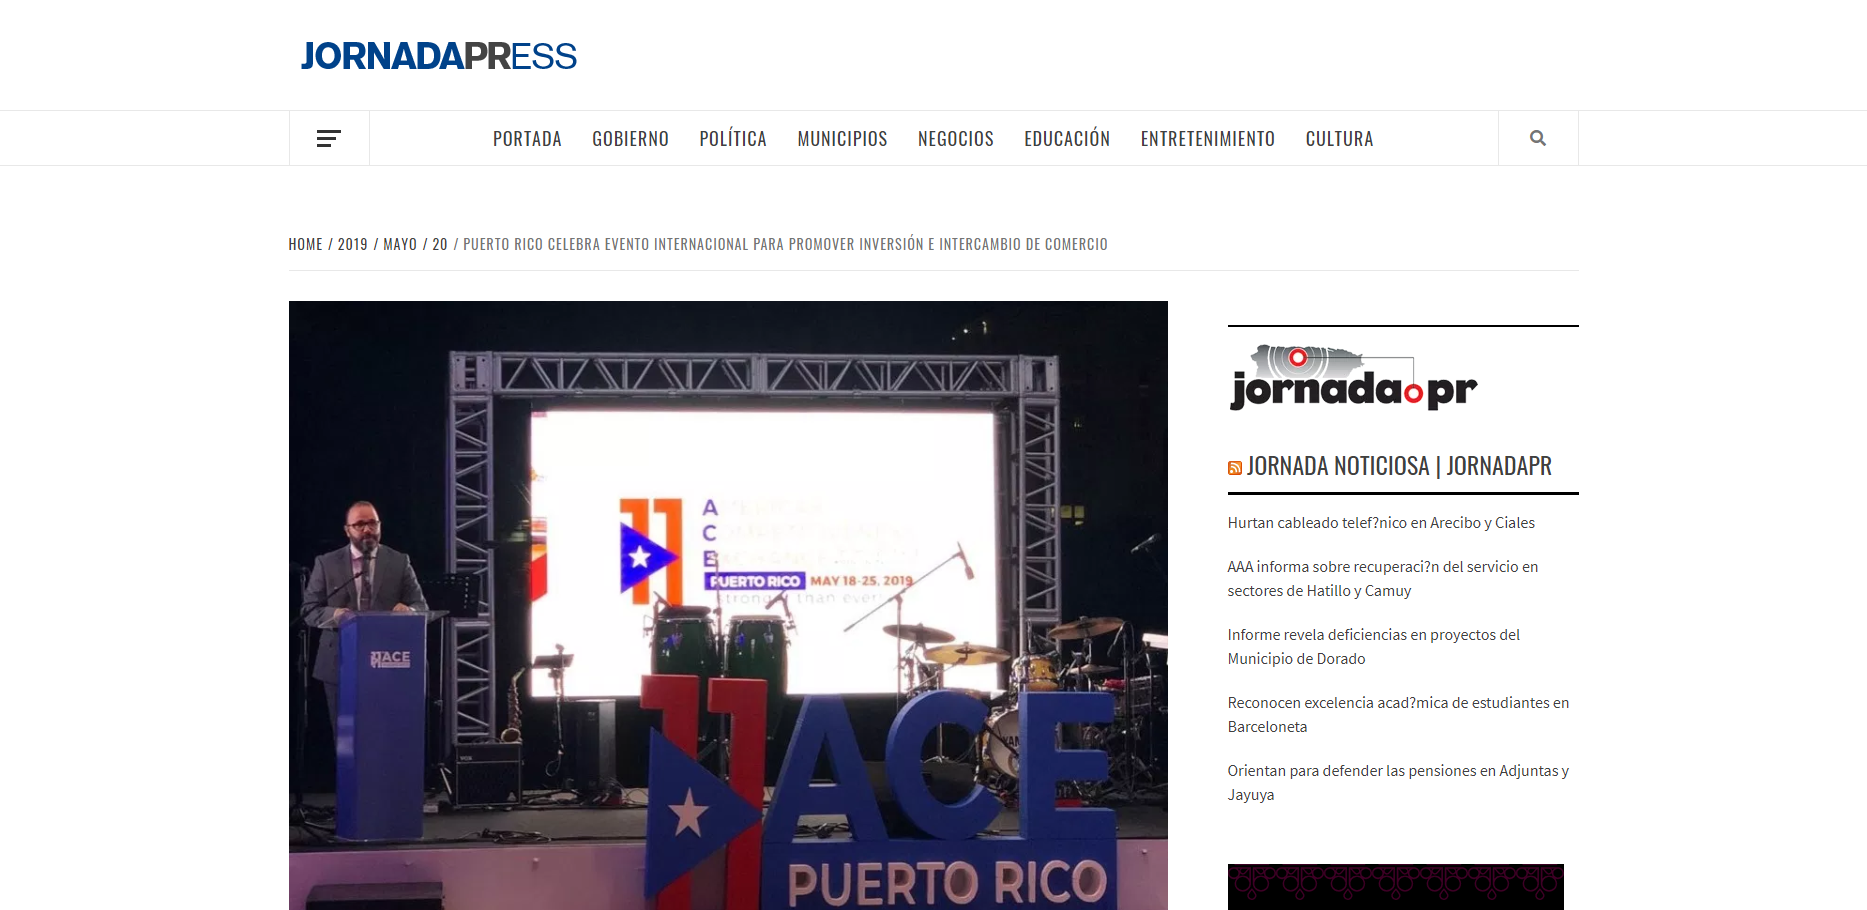 """Puerto Rico celebra evento internacional para promover inversión e intercambio de comercio"", Jornada Press, May 20, 2019"